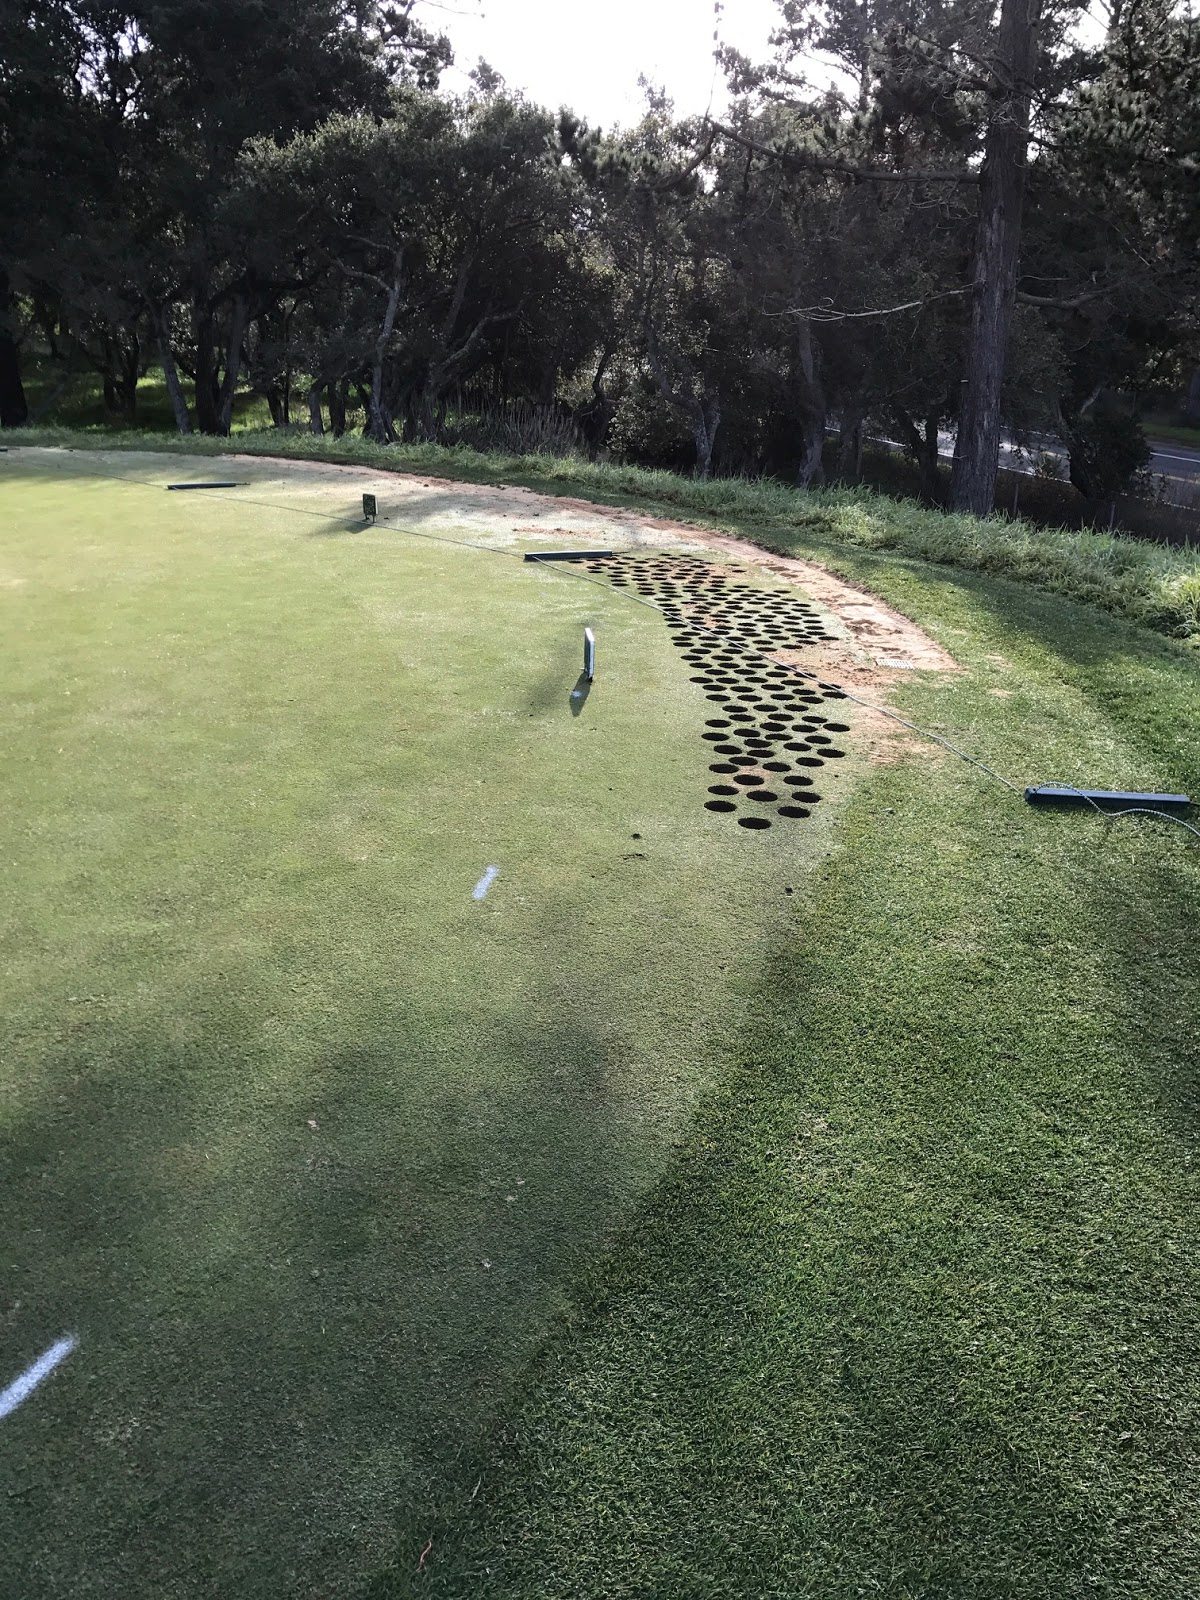 this past week some of our talented team led by our assistant superintendent blake tackled a sod job behind 7 green that we have had on our radar for quite